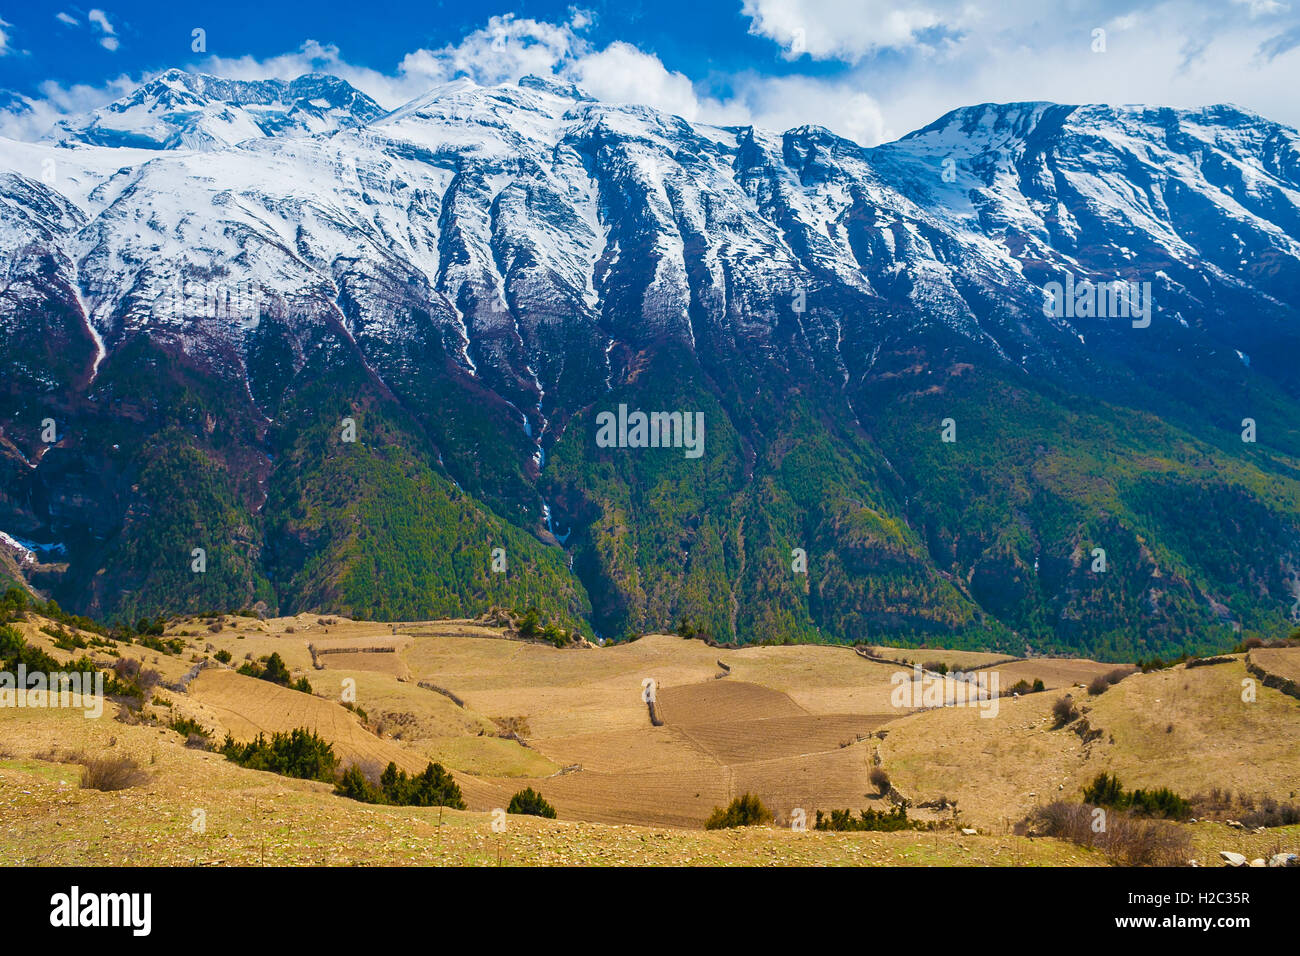 Landscape Snow Mountains Nature Viewpoint.Mountain Trekking Landscapes Background. Nobody photo.Asia Travel Horizontal Stock Photo